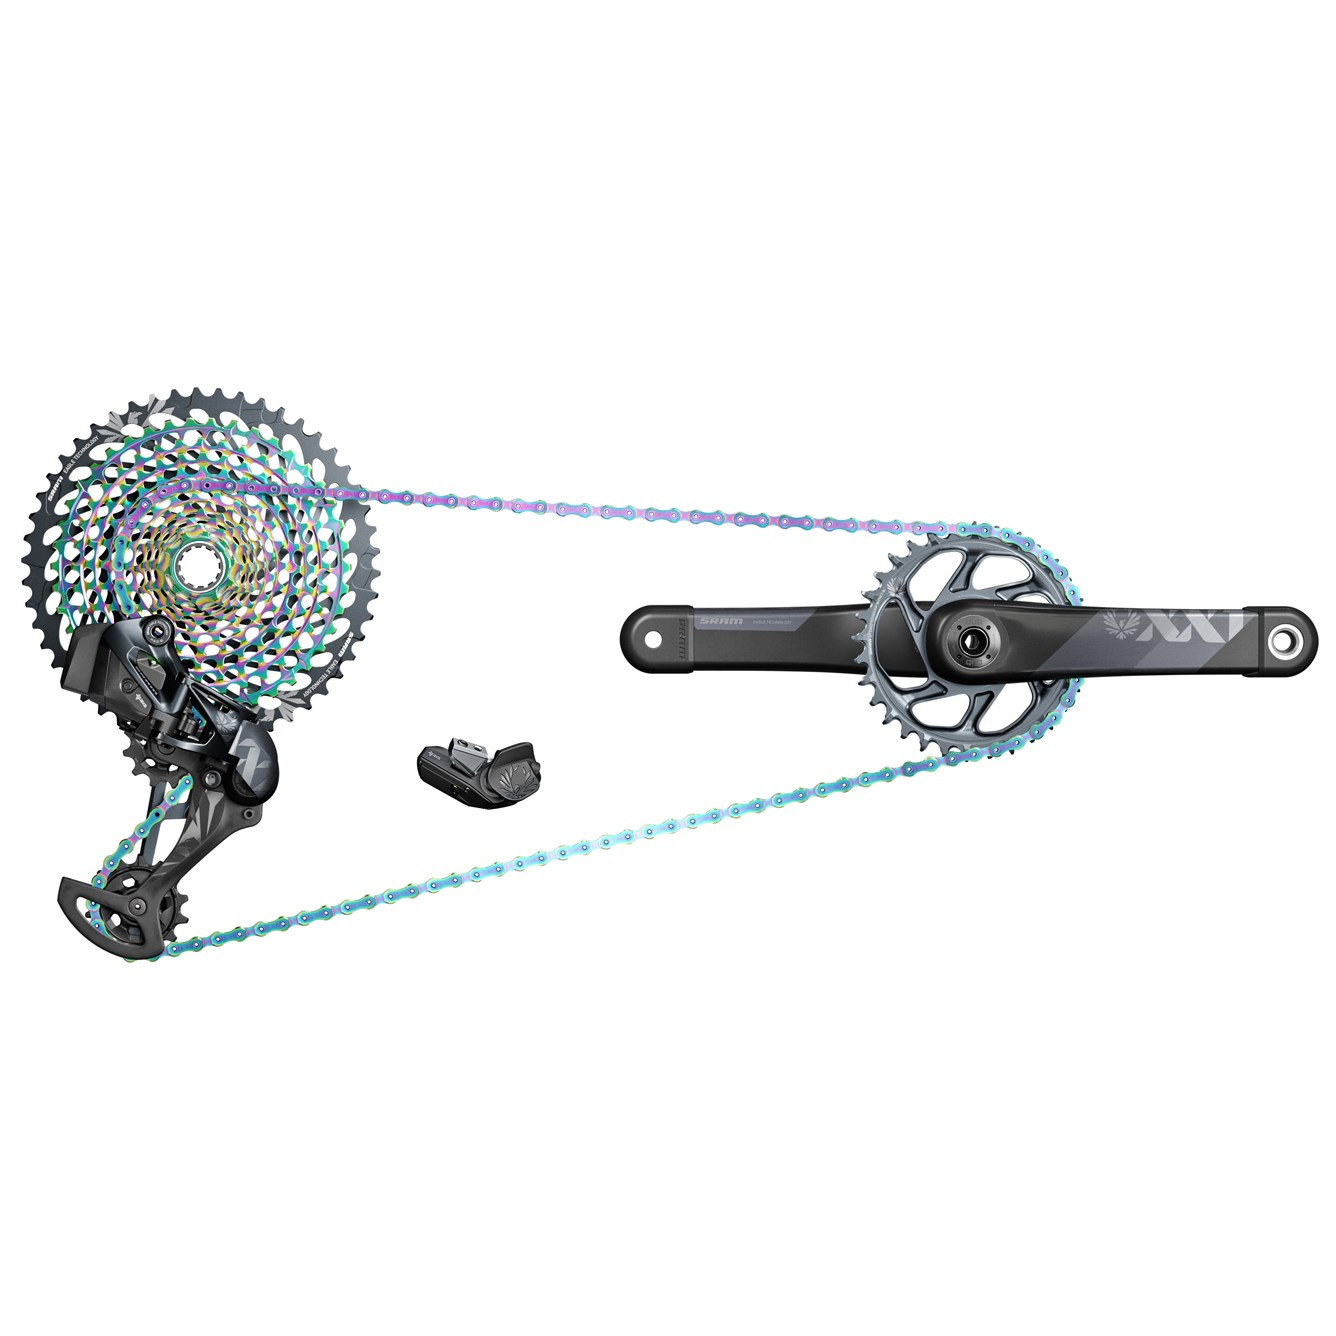 SRAM XX1 Eagle AXS gruppe 1x12 speed - 170 mm - 00.7918.079.000 | Groupsets